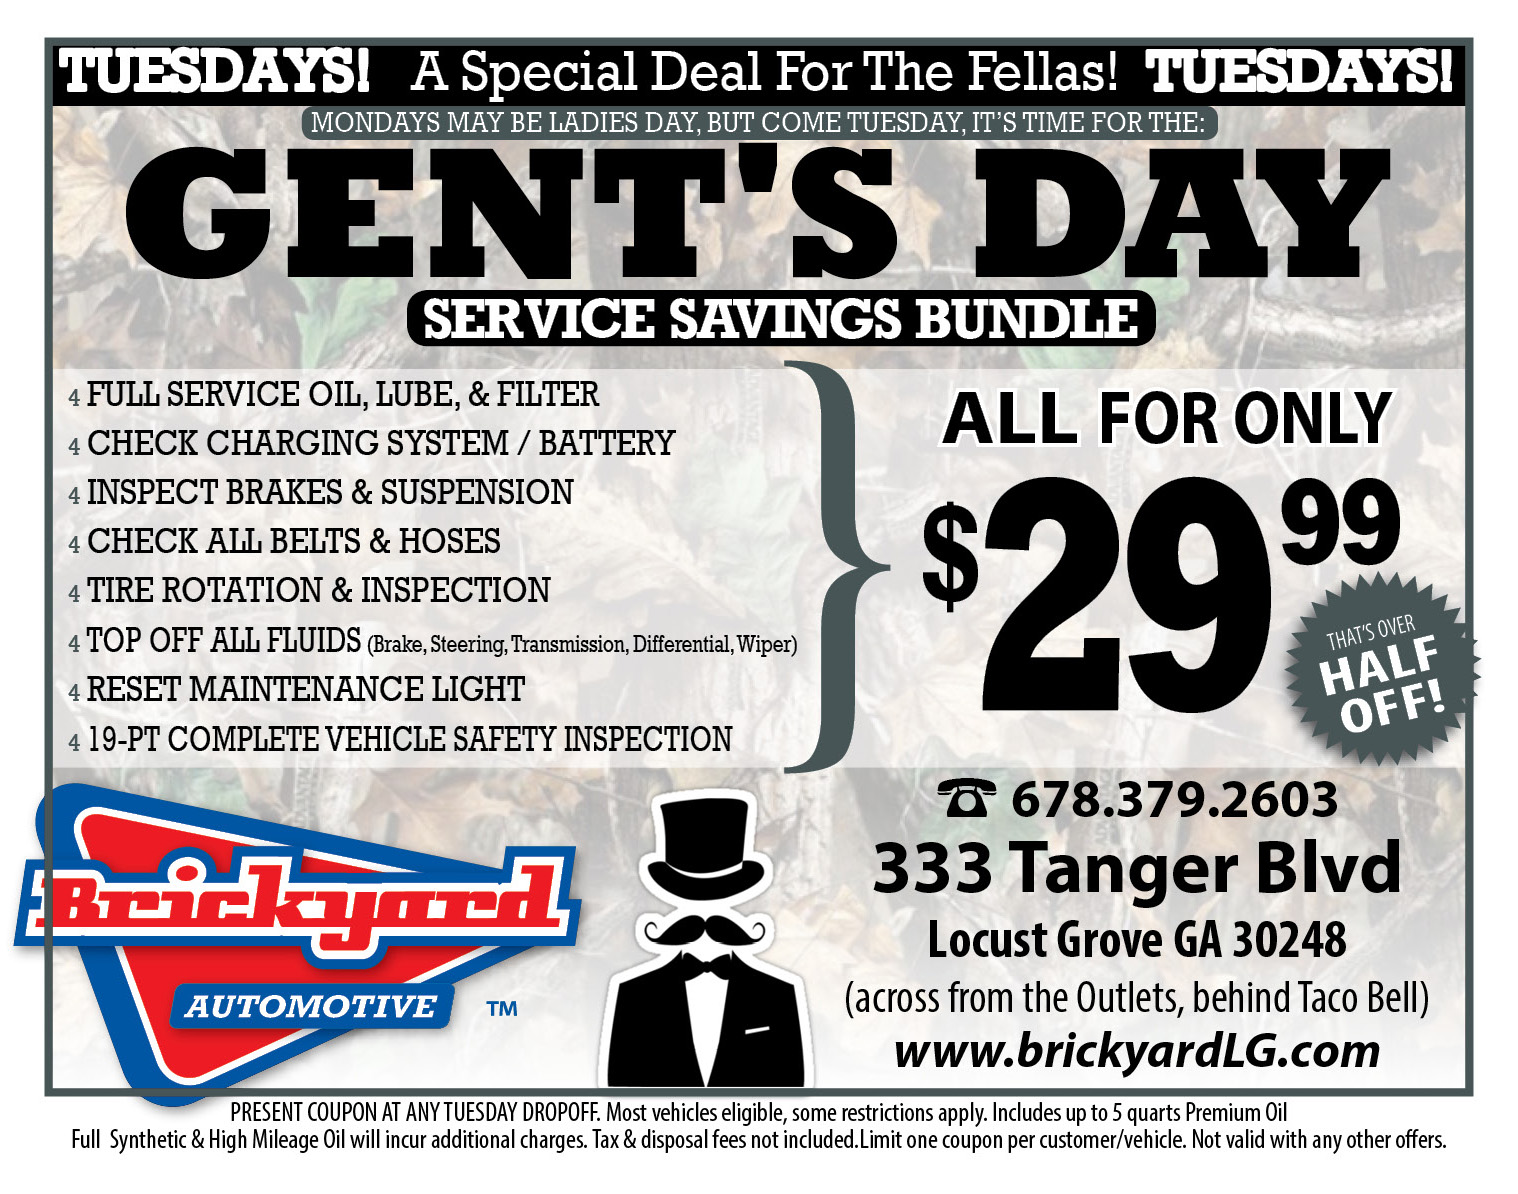 Gents Day Special - Half price oil change on Tuesdays